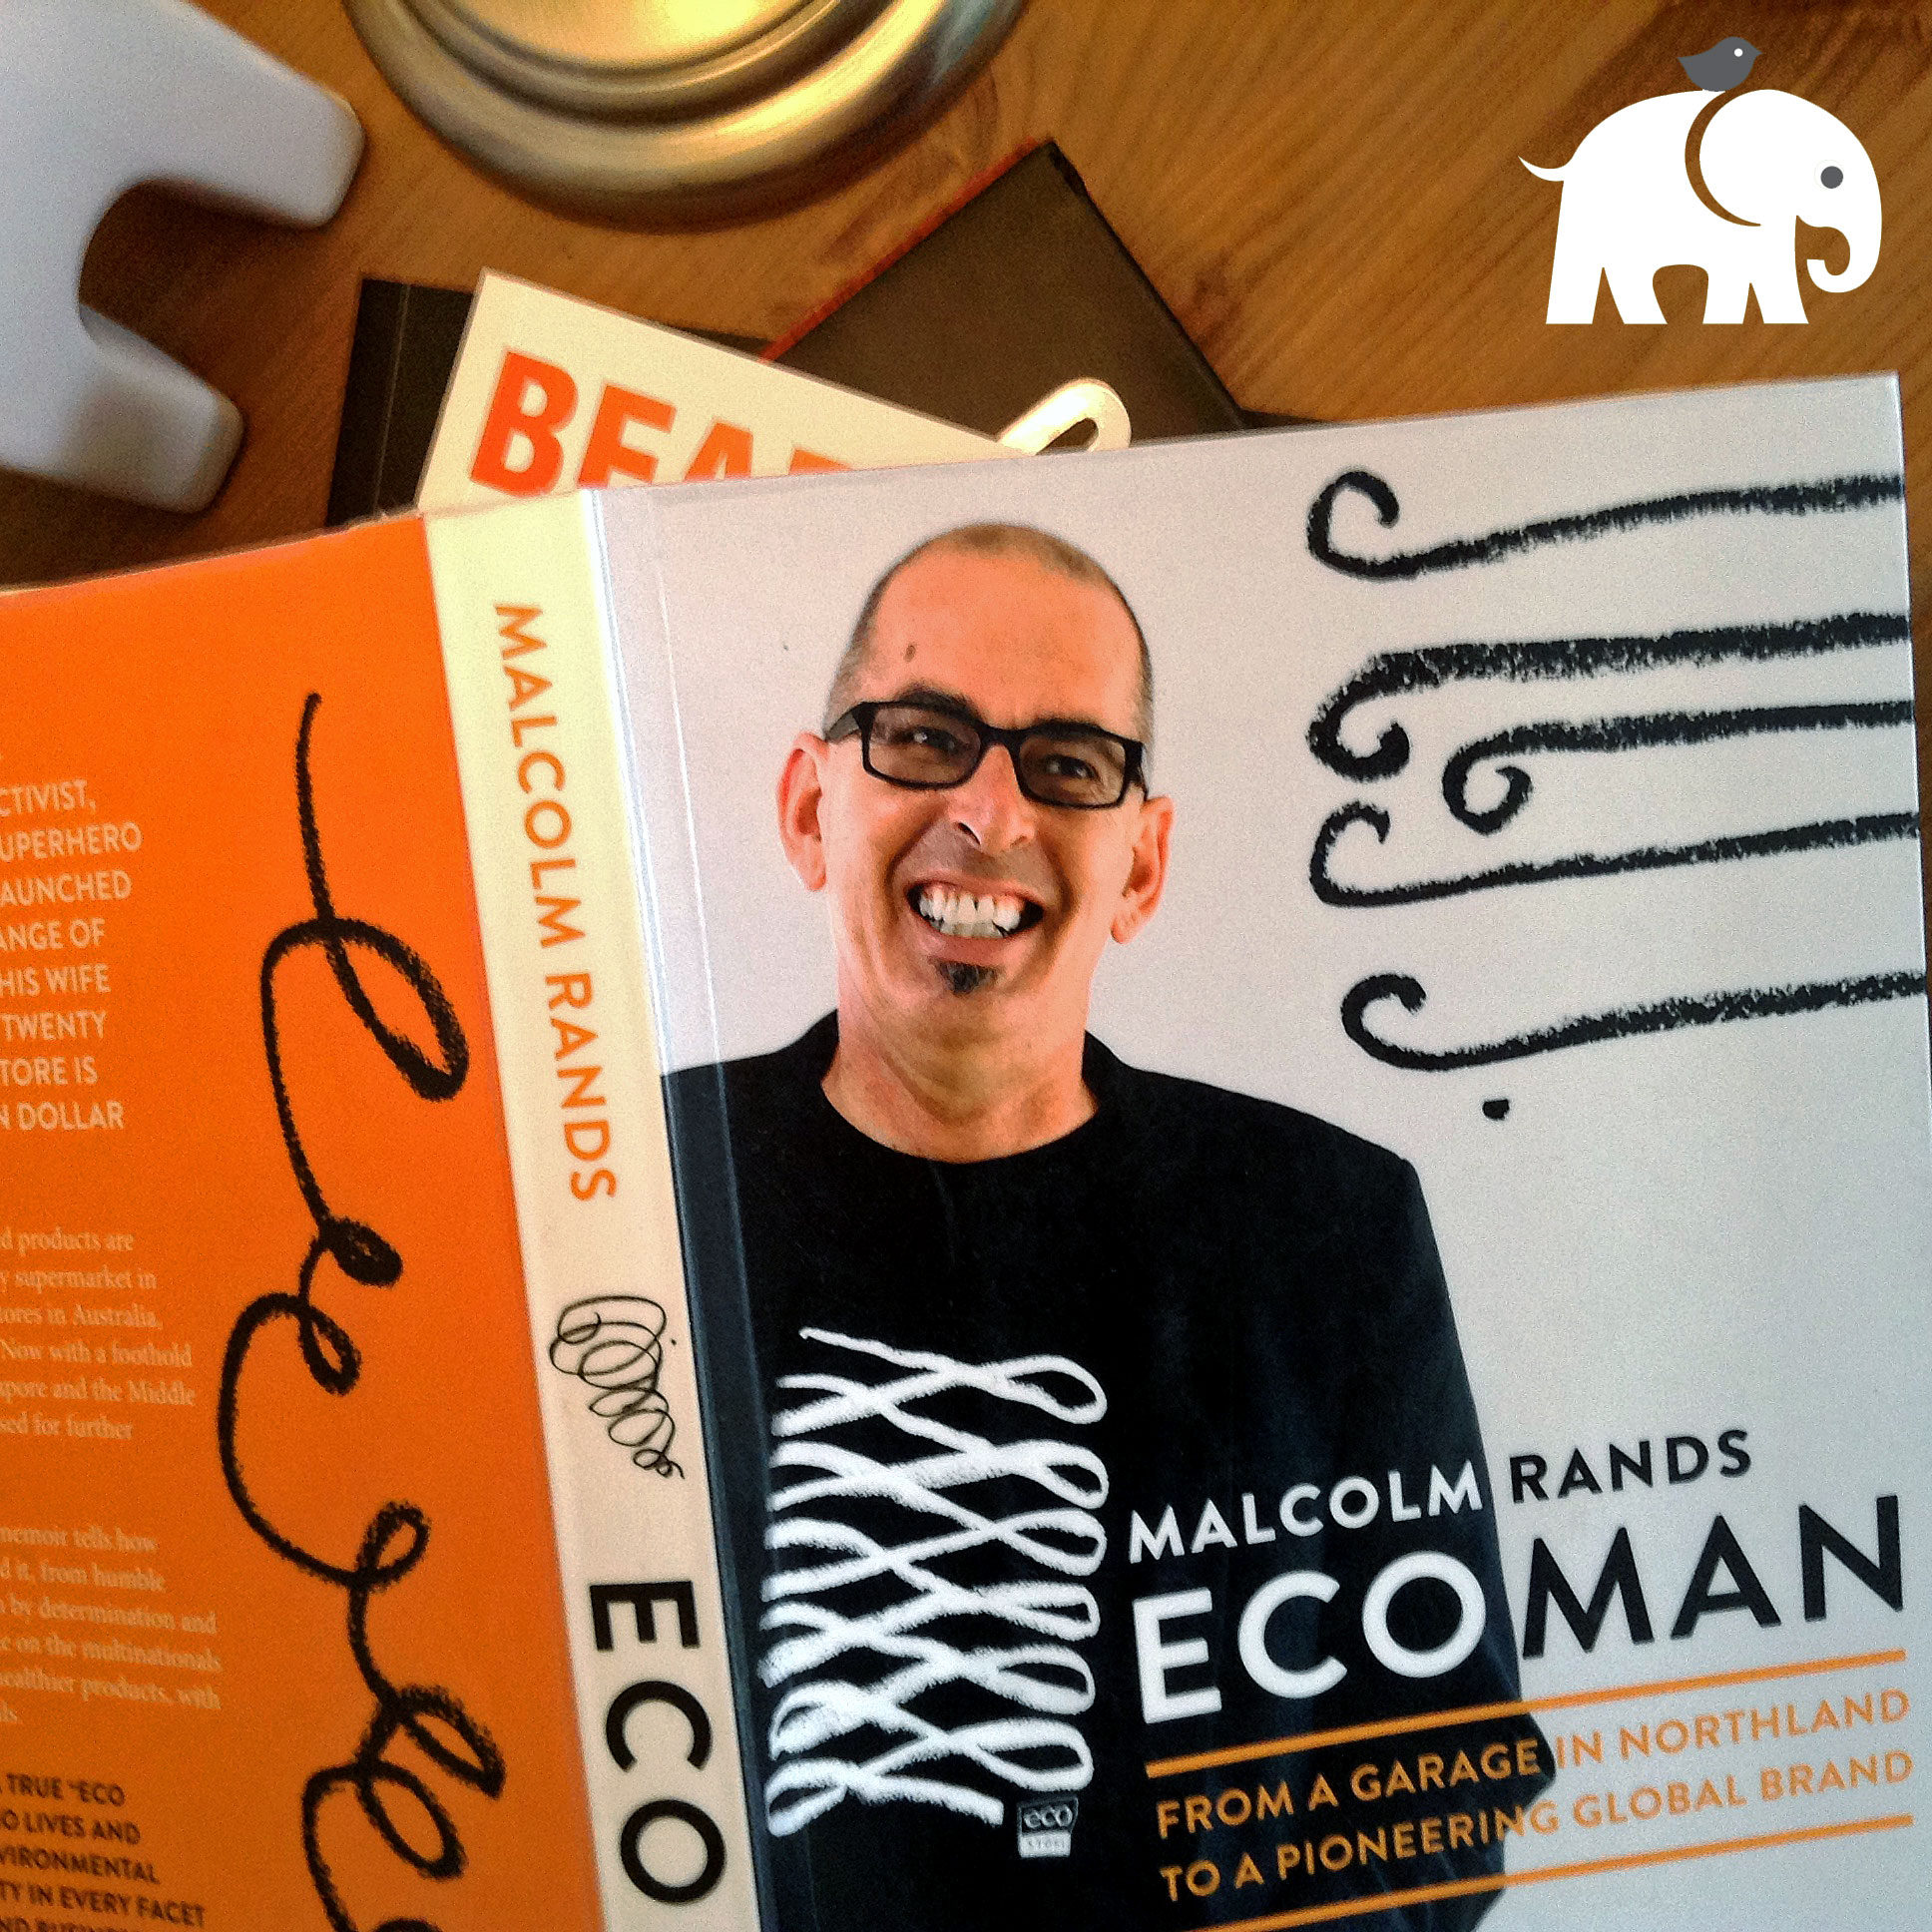 ecoman r ands malcolm